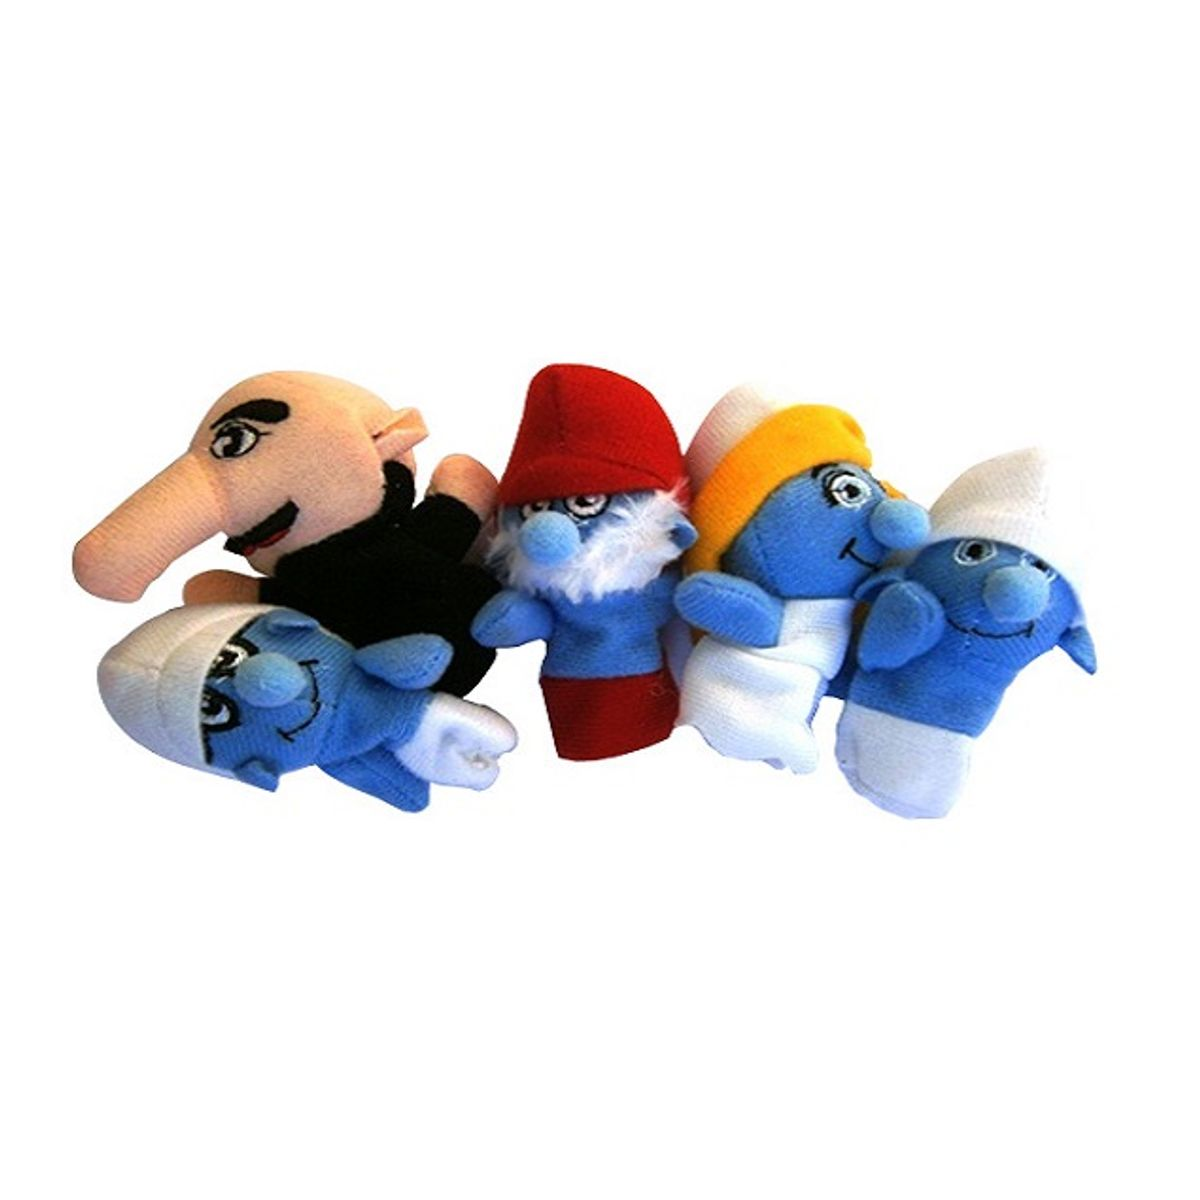 Triazolam Plush Toy Finger Puppets Doll Toys Hand Puppets Animals Learning Aid Finger